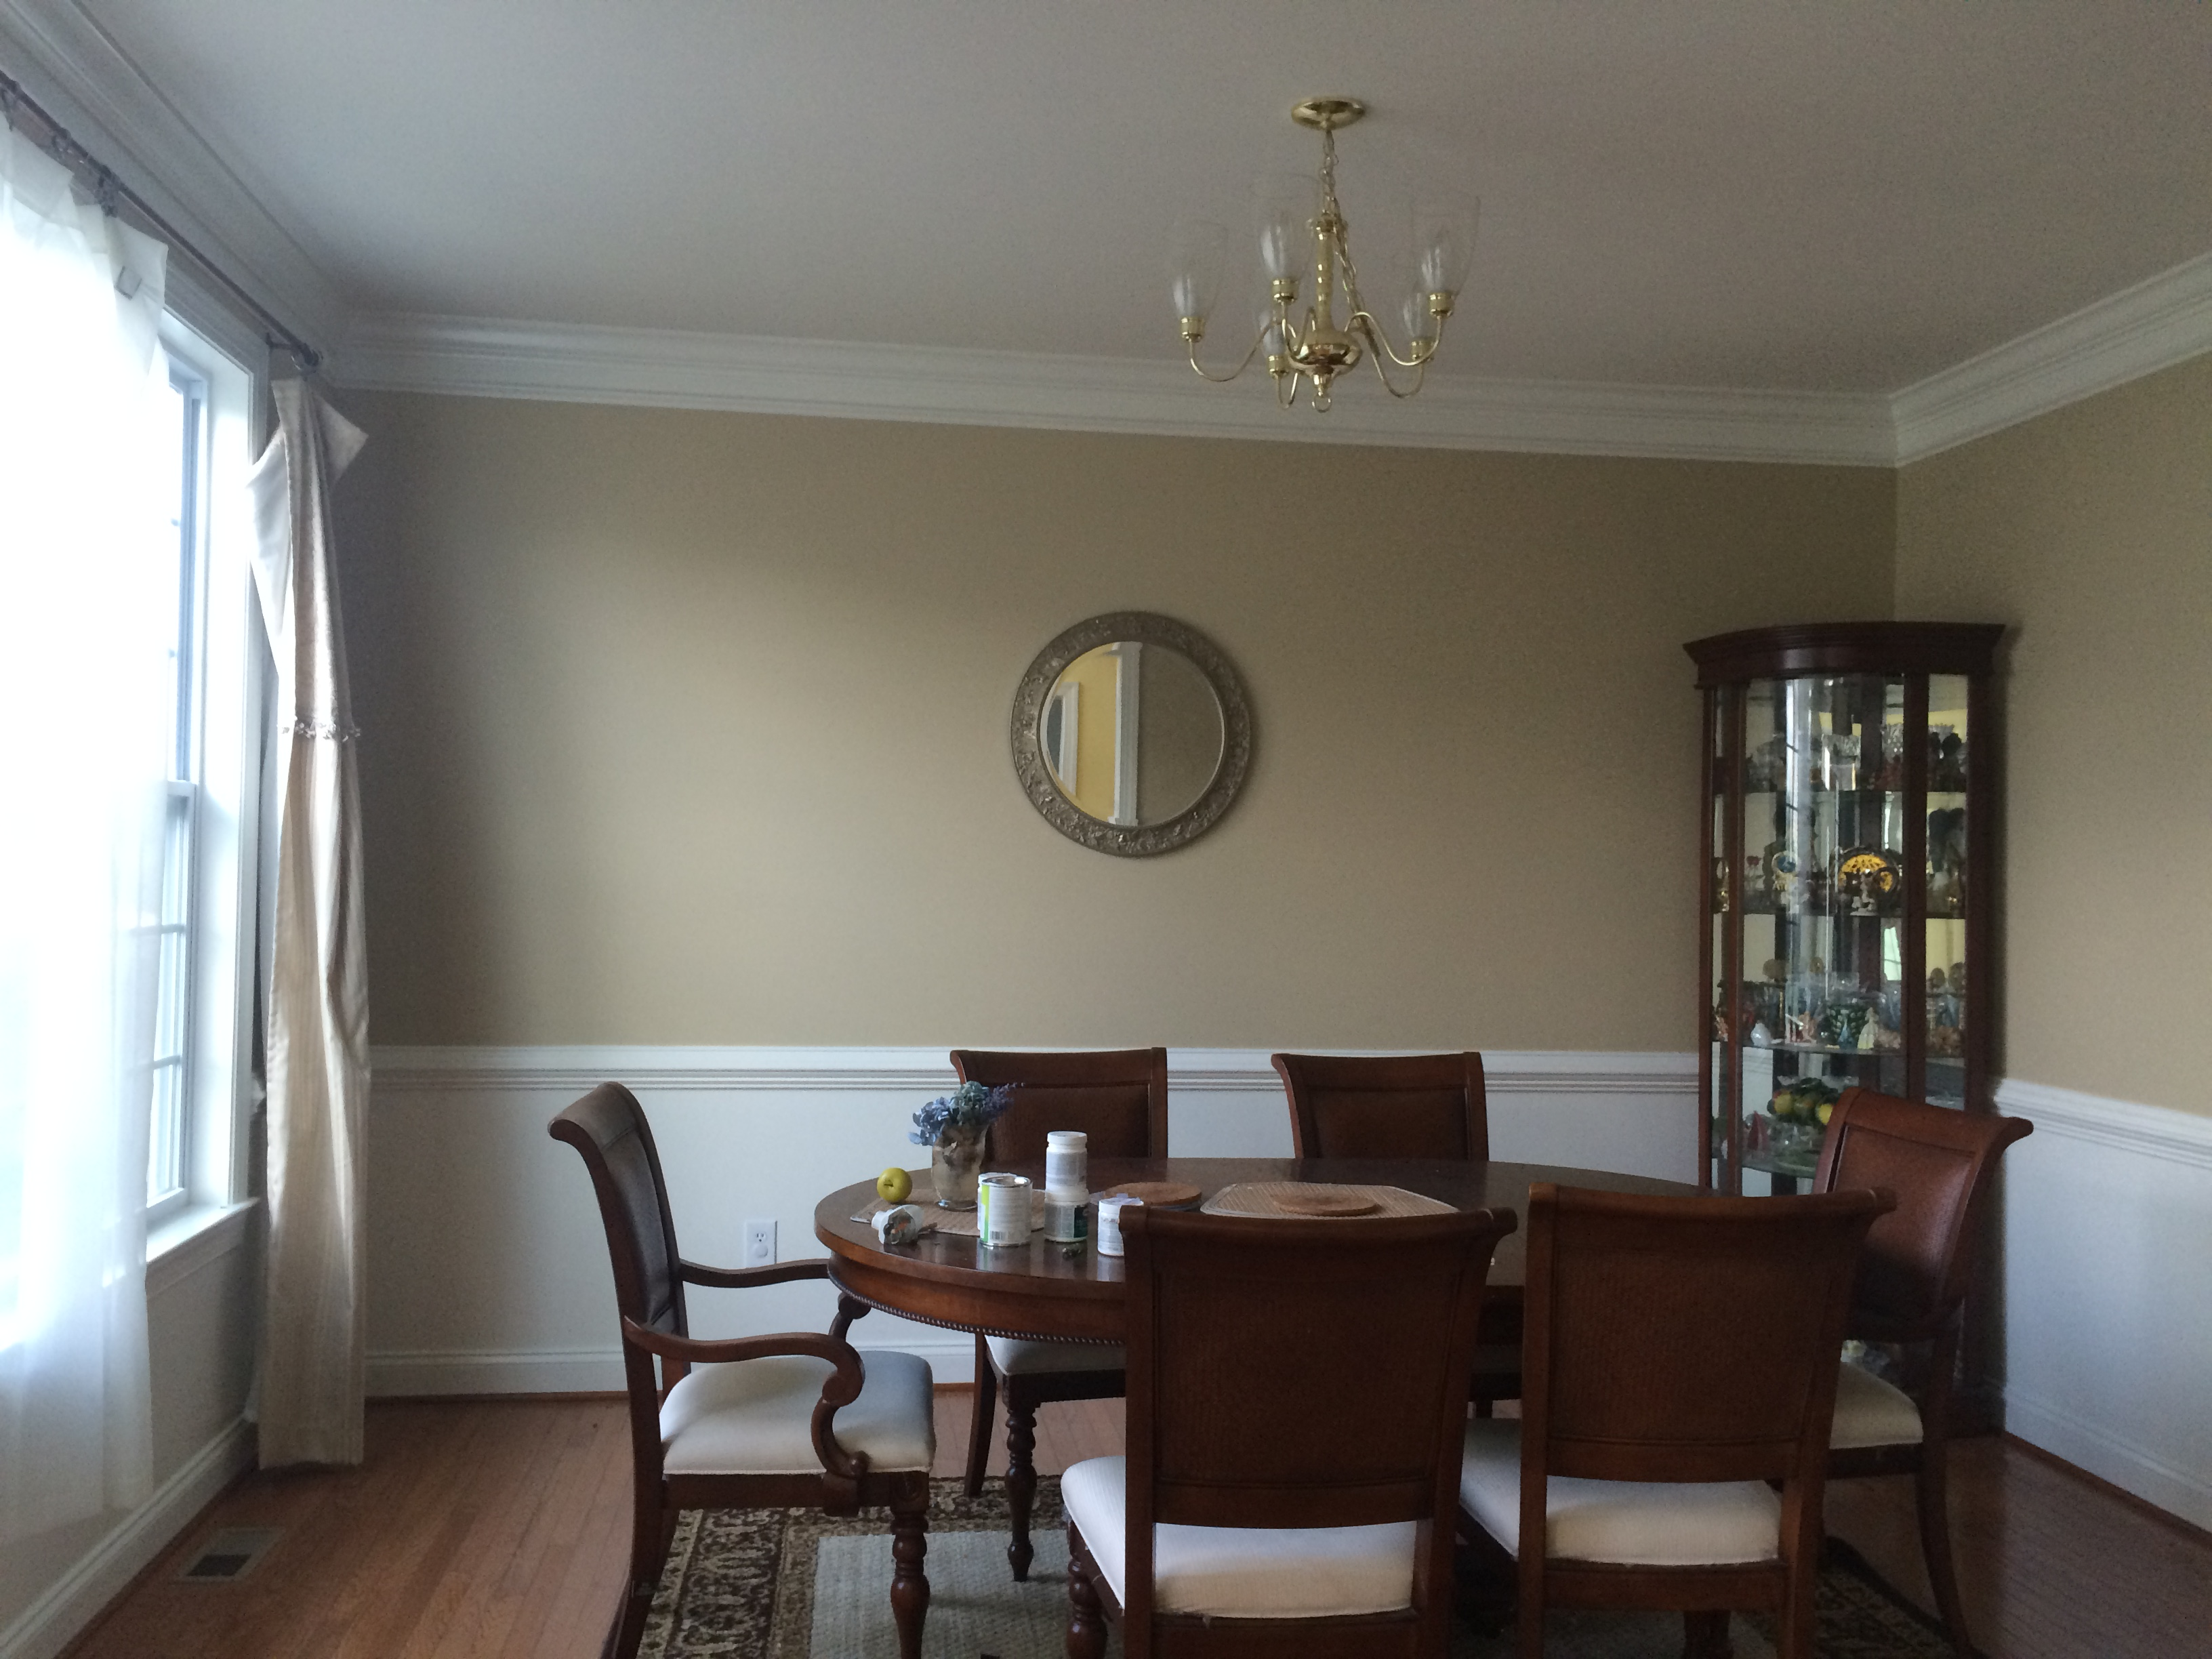 wheeling neutral dining room color ideas benjamin moore painting home decor - Benjamin Moore Room Color Ideas